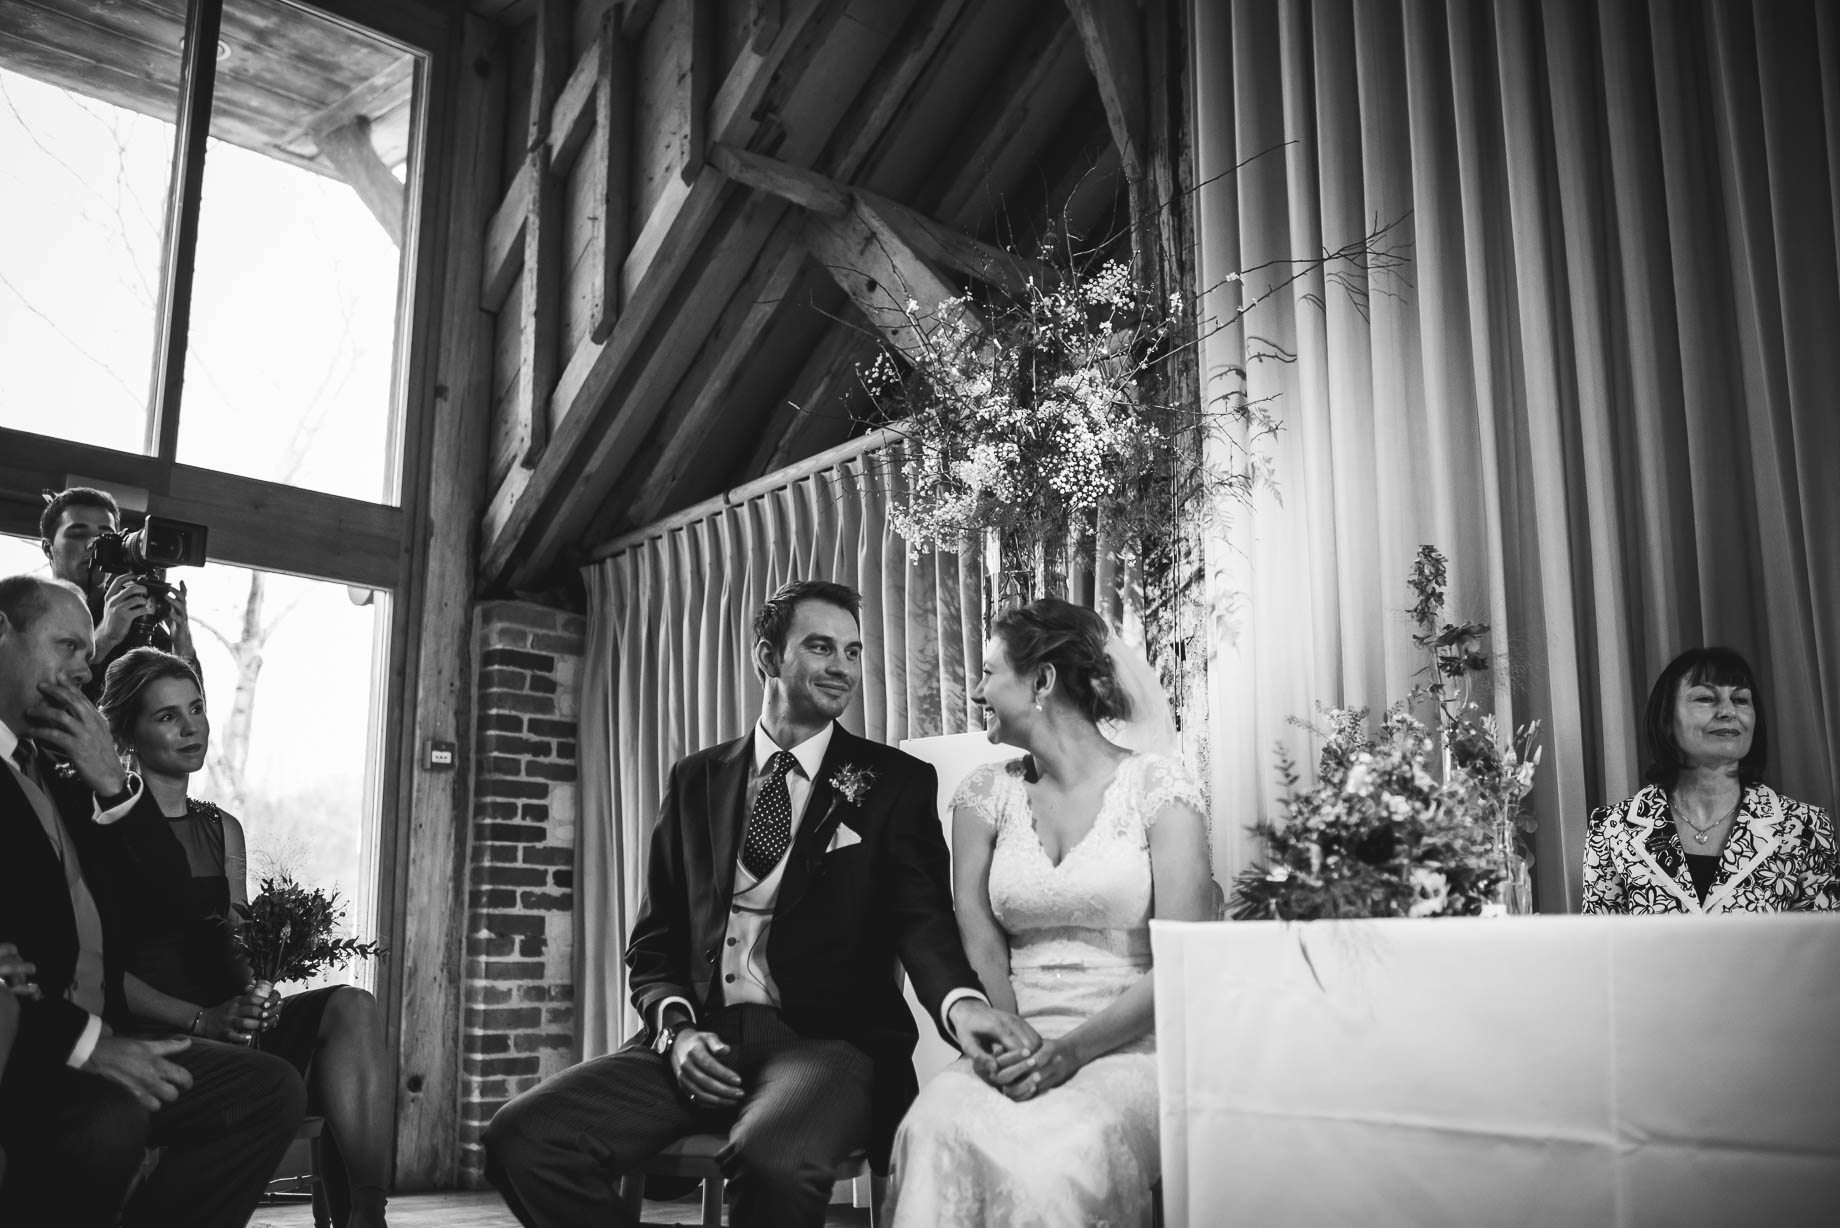 Bury Court Barn wedding photography - Ashley and Henry by Guy Collier Photography (48 of 188)